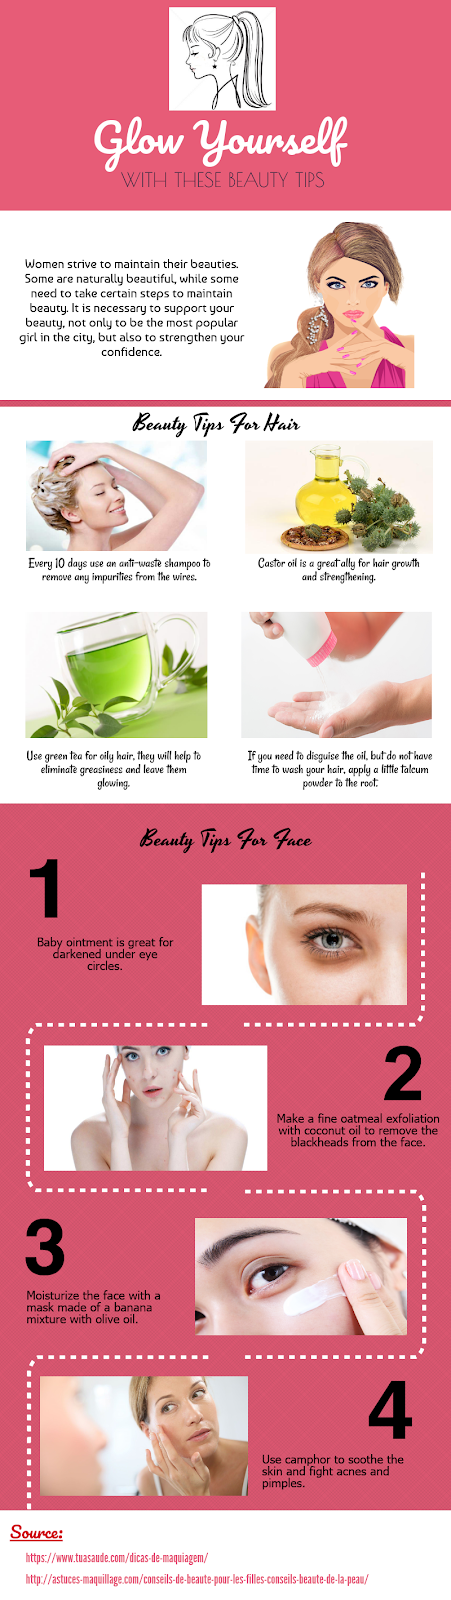 Best Beauty/Skincare Tips for Women with Light and Pale Skin